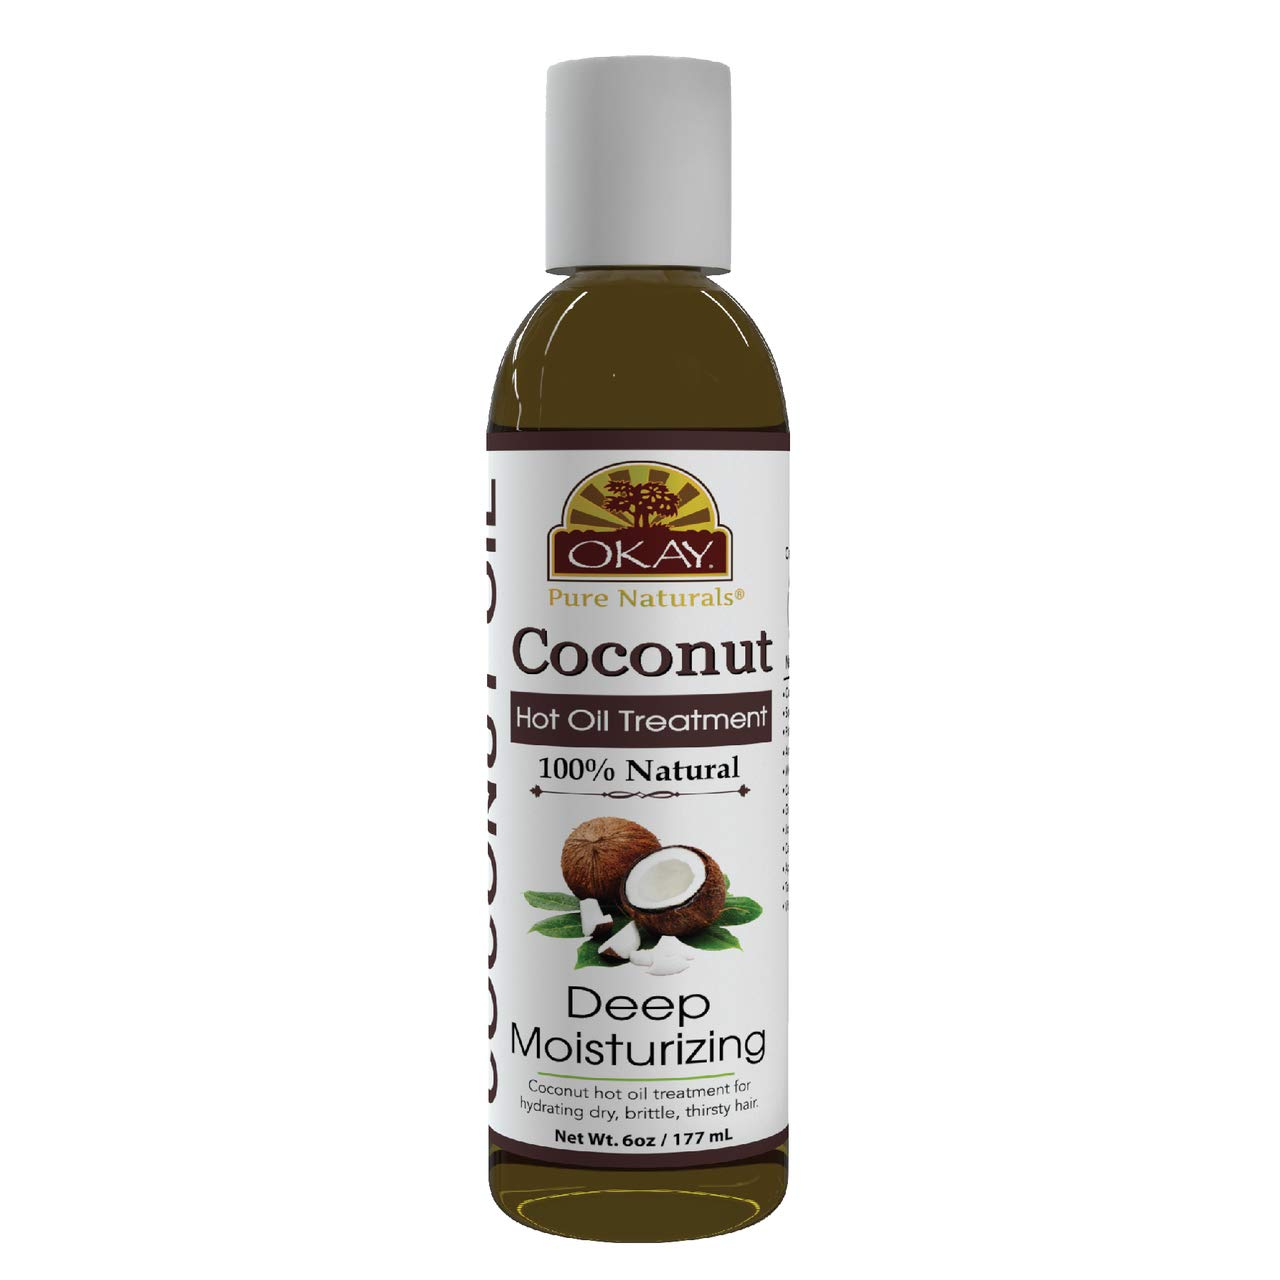 OKAY   Coconut Hot Oil Treatment   For All Hair Types & Textures   Deeply Penetrating   100% Natural   Free of Paraben, Silicone   6 oz